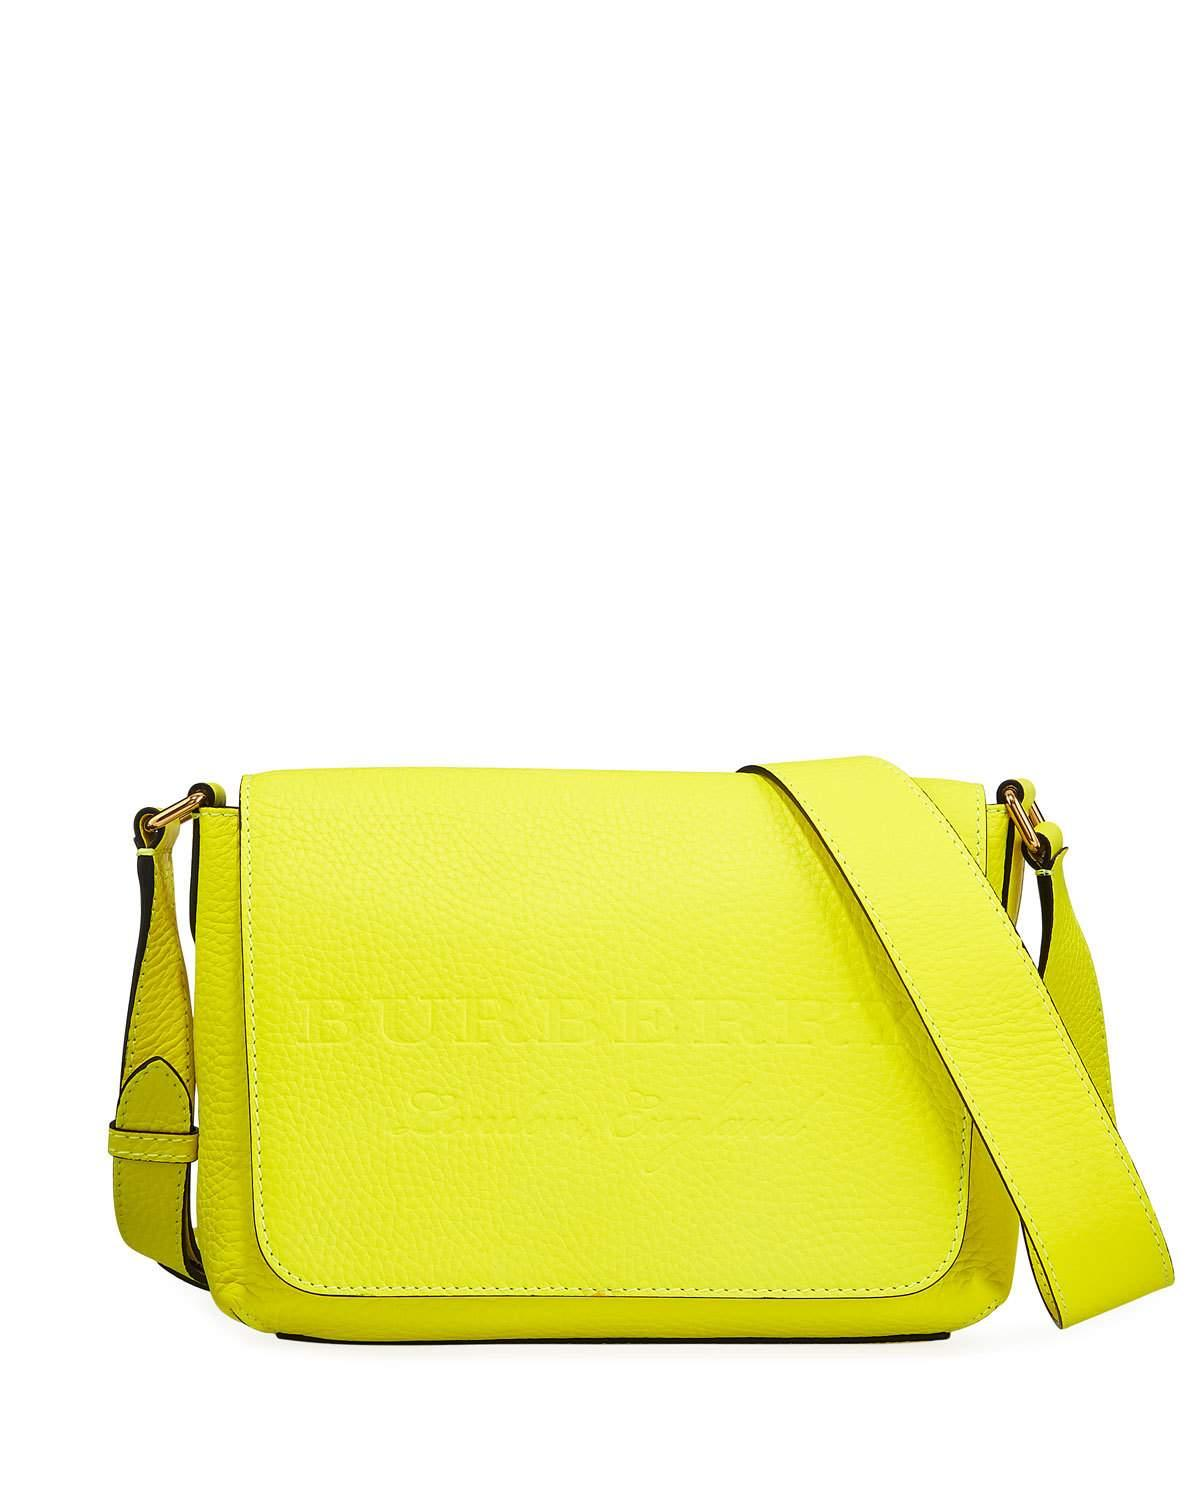 d8b5c3a66a7 Burberry Burleigh Small Soft Leather Crossbody Bag, Yellow | ModeSens